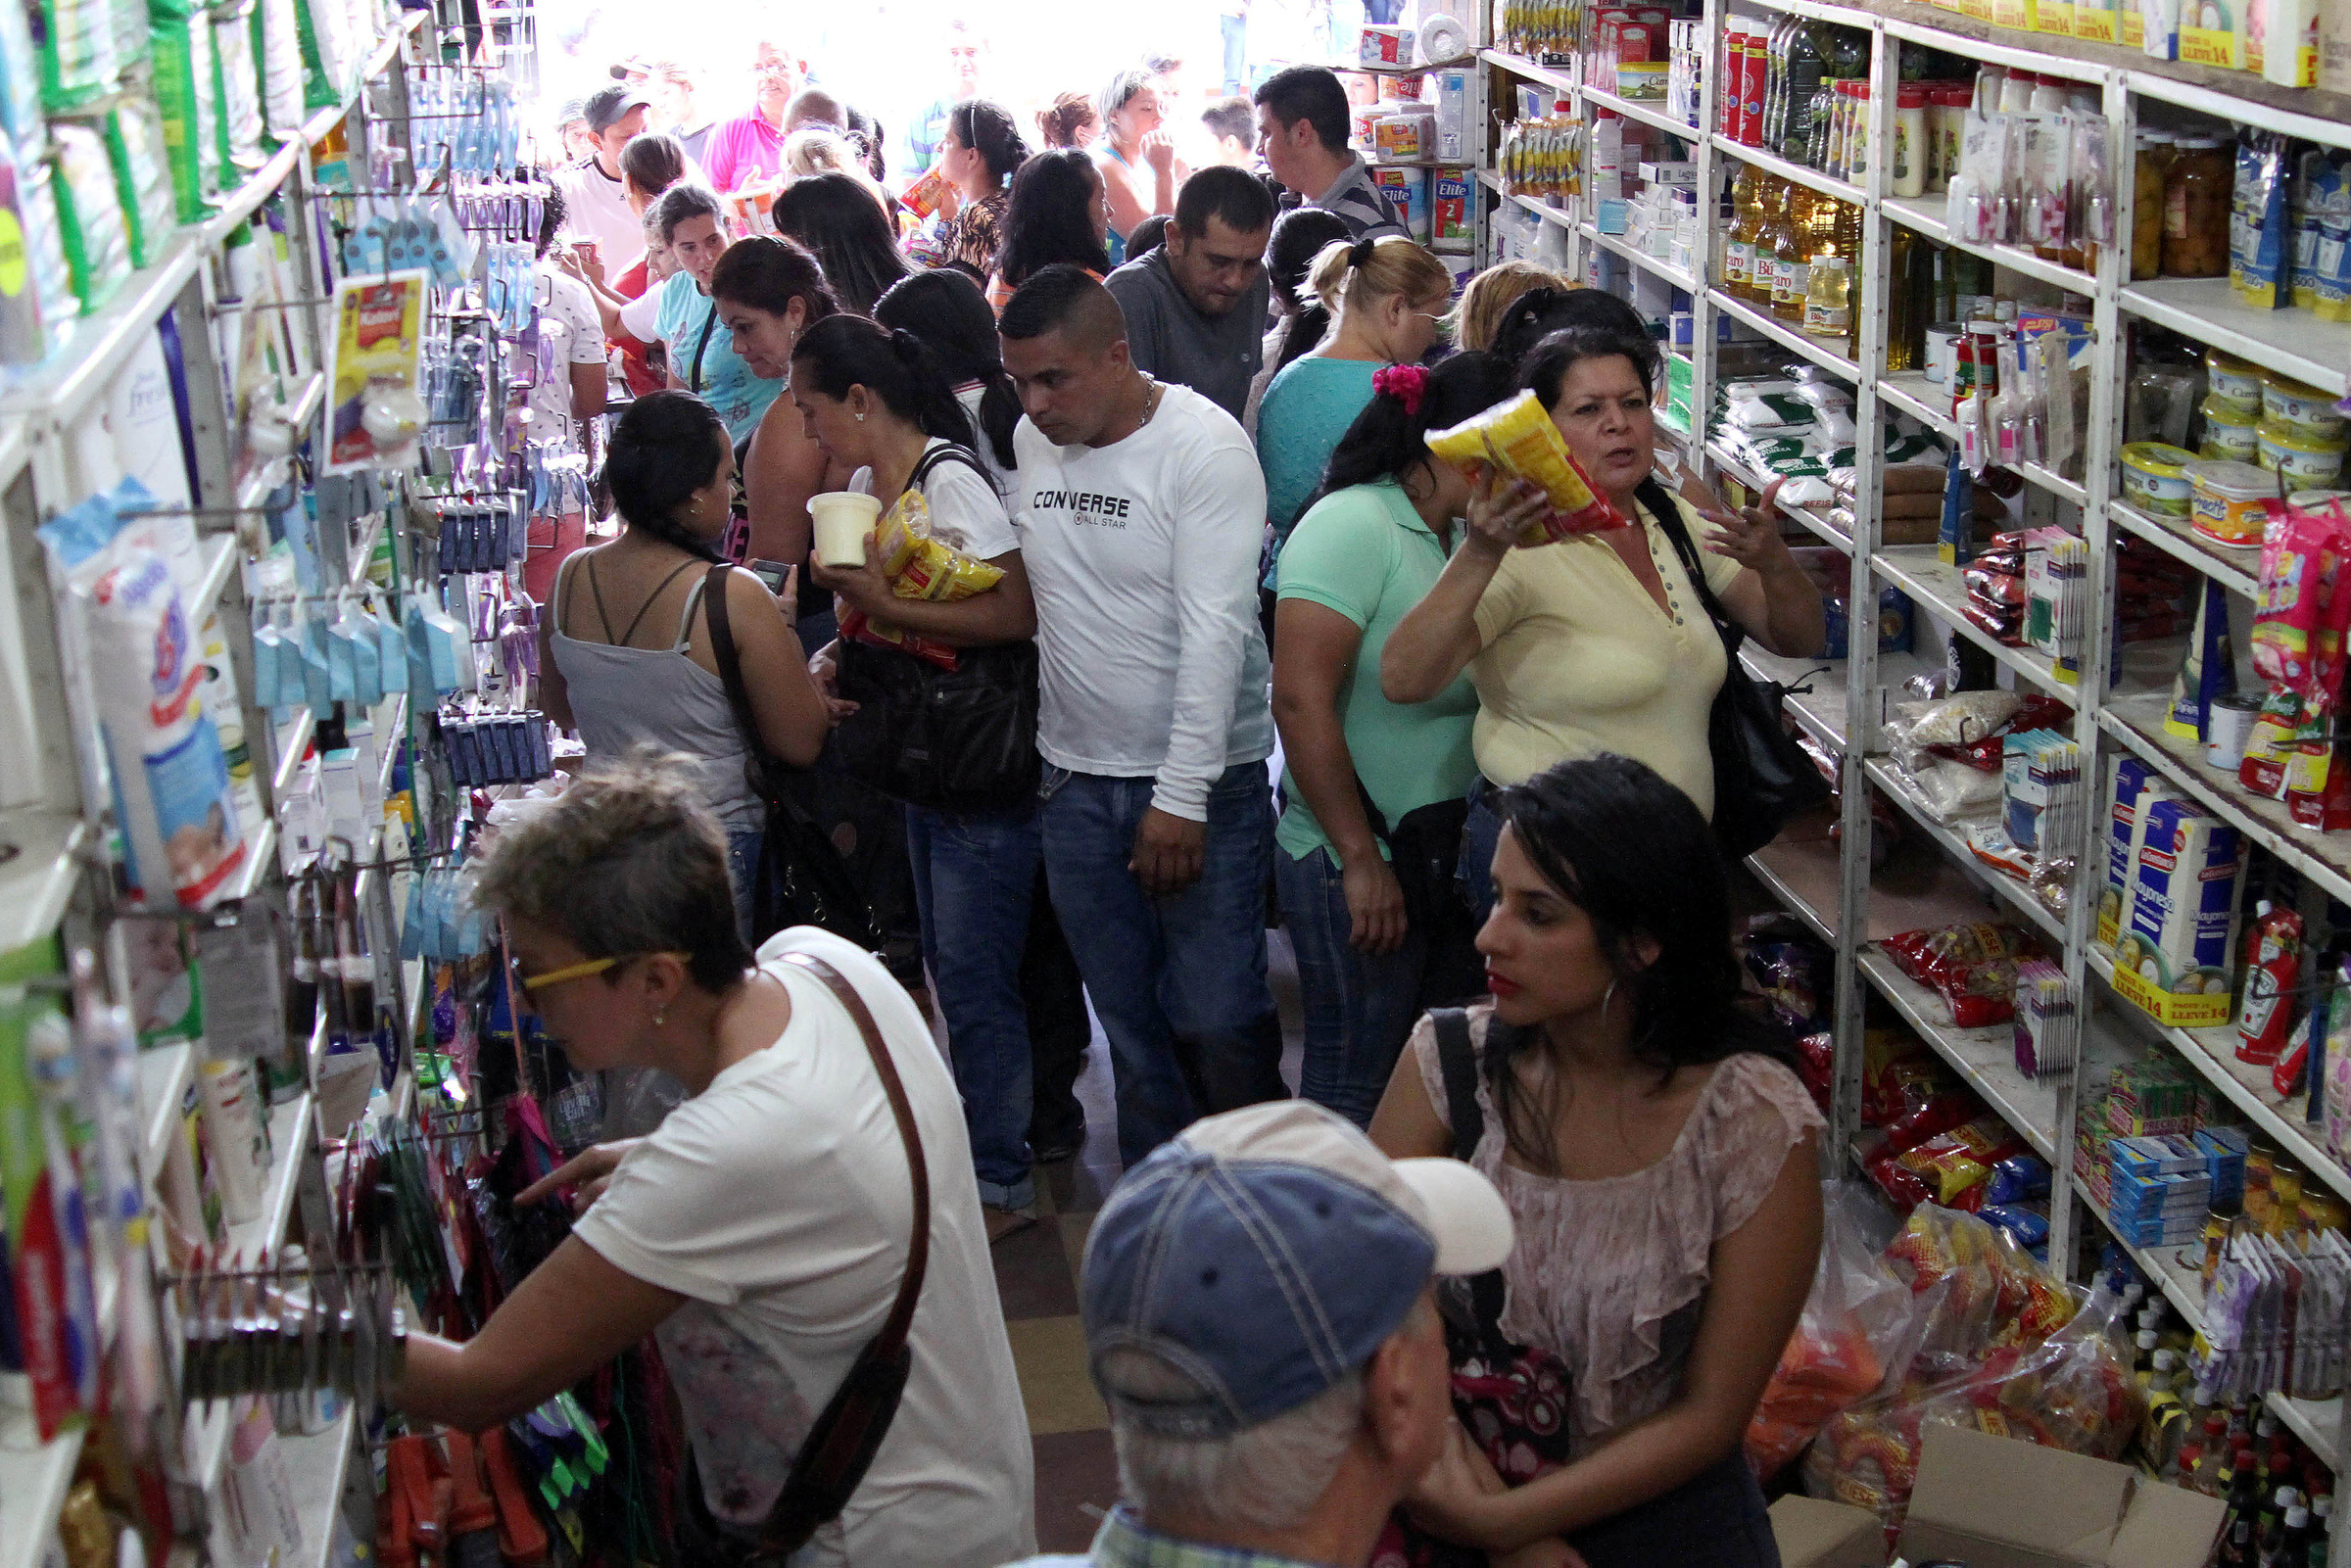 Venezuelans buy goods at a local supermarket in Cucuta, Colombia, July 10, 2016, during a temporary border opening. (CNS photo/Manuel Hernandez, Reuters)